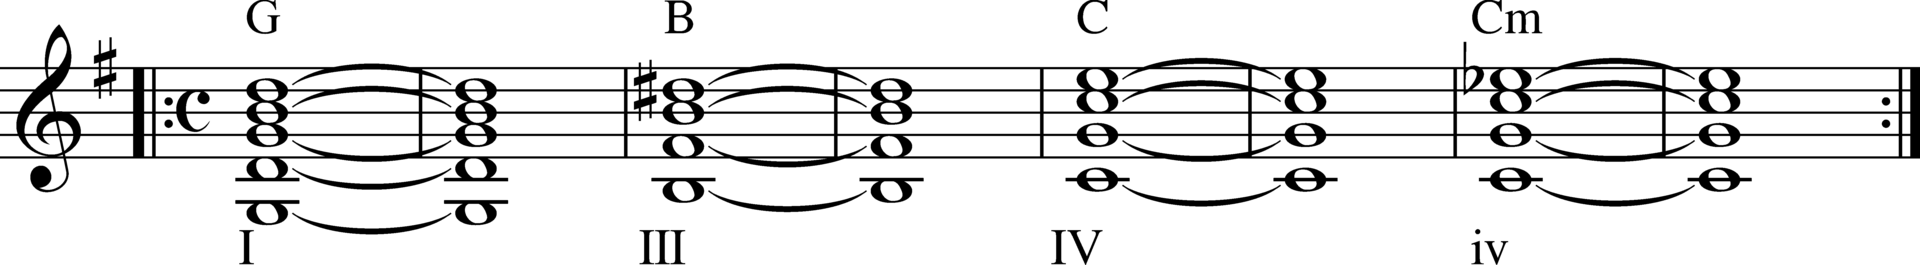 https://upload.wikimedia.org/wikipedia/commons/thumb/d/d8/Radiohead_%22Creep%22_ostinato.png/1920px-Radiohead_%22Creep%22_ostinato.png